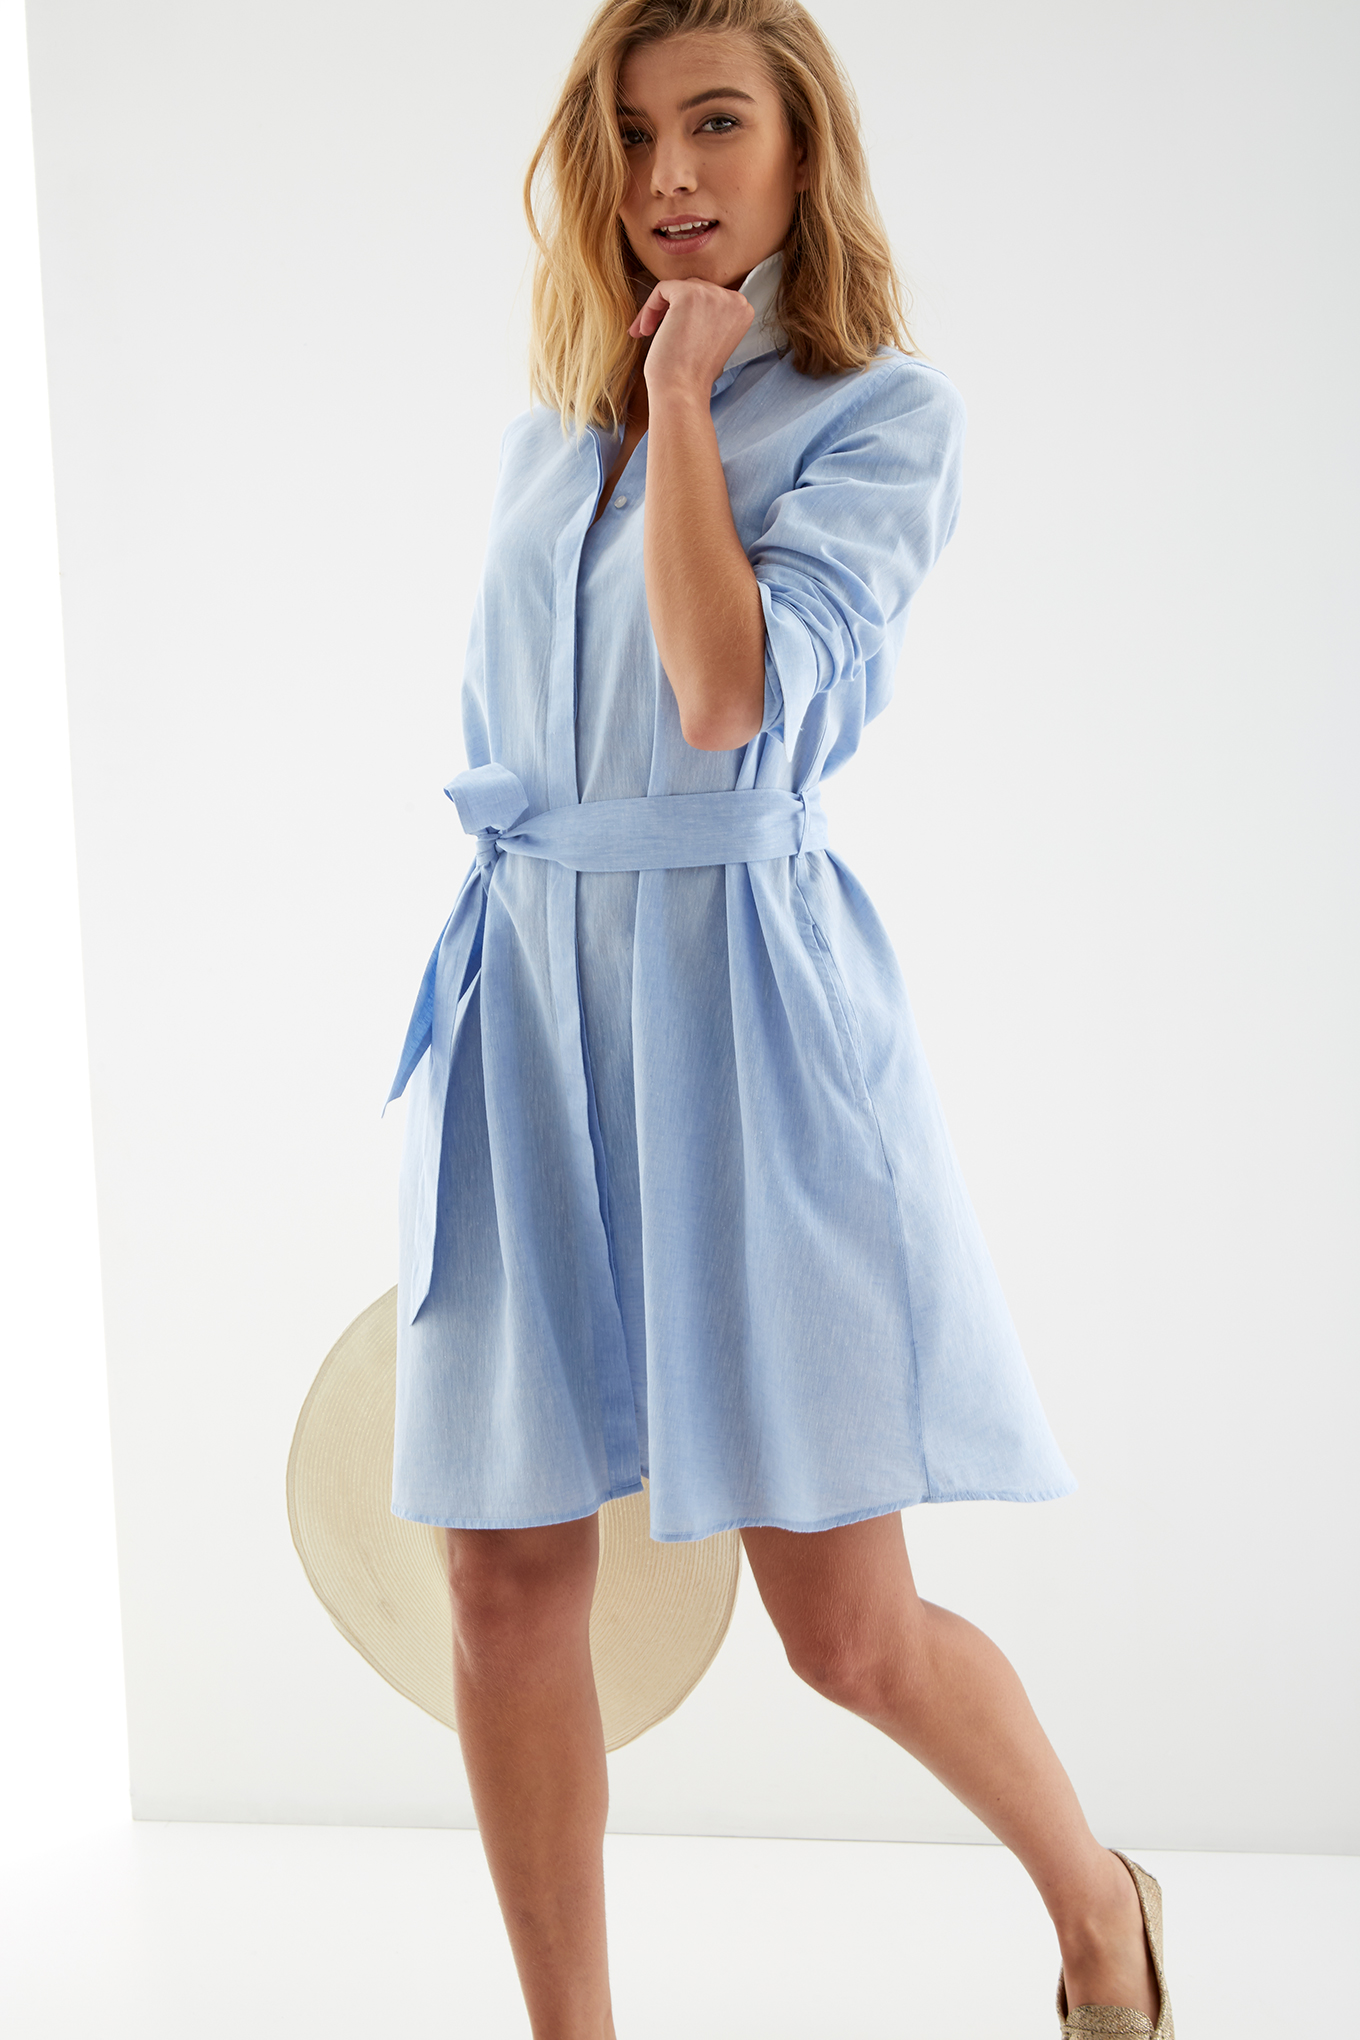 Shirt Dress Light Blue Classic Woman